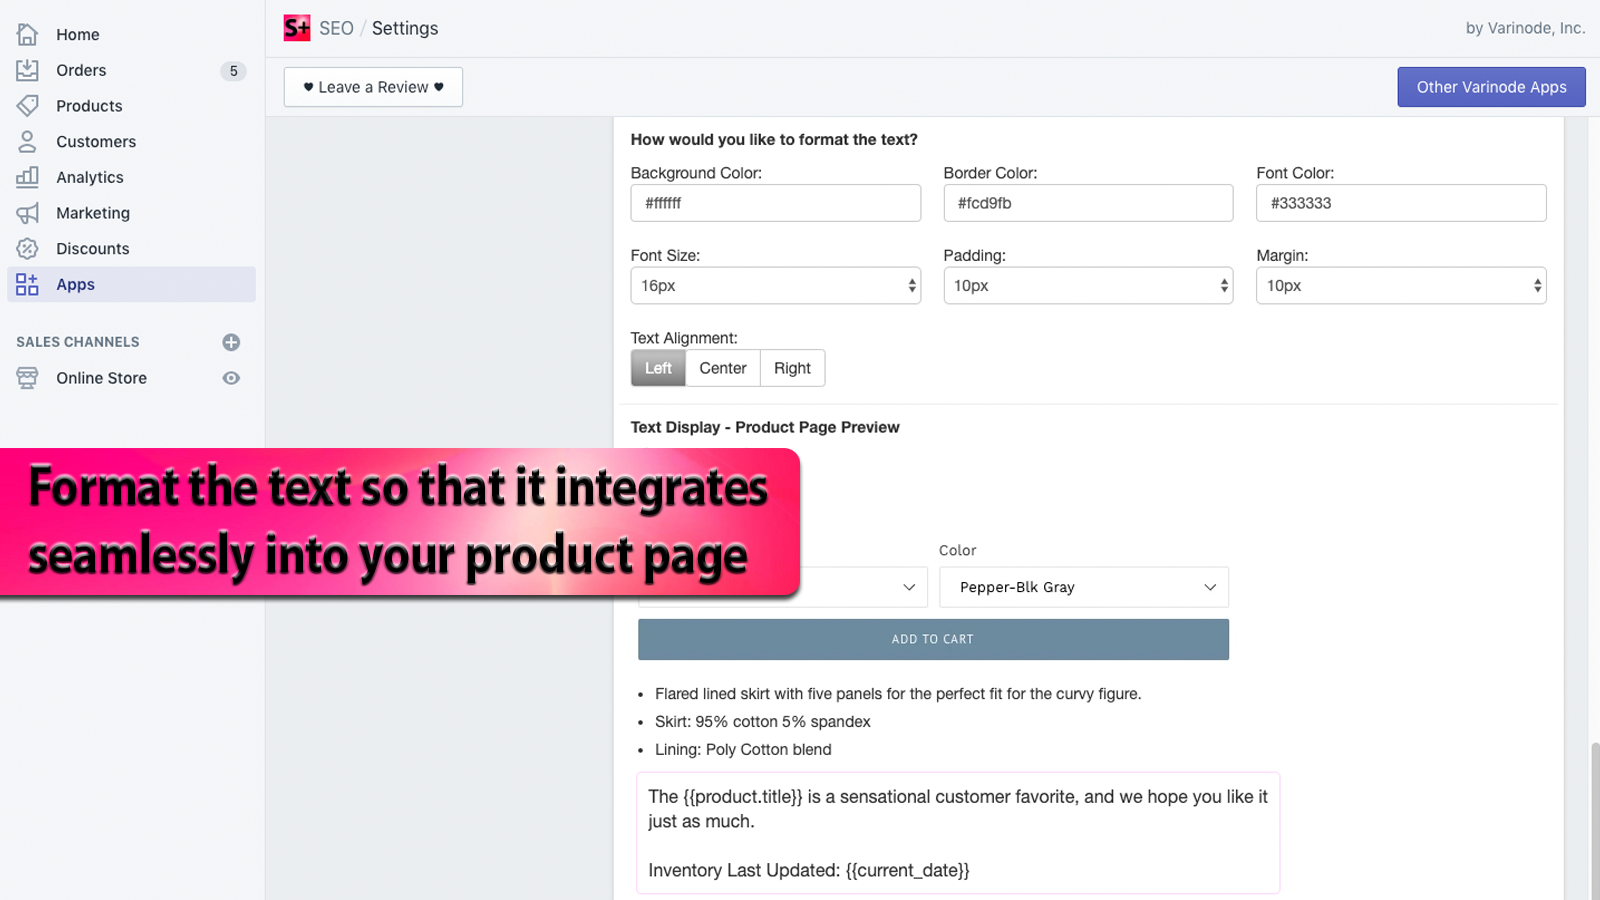 Format the text so that it integrates seamlessly into your page